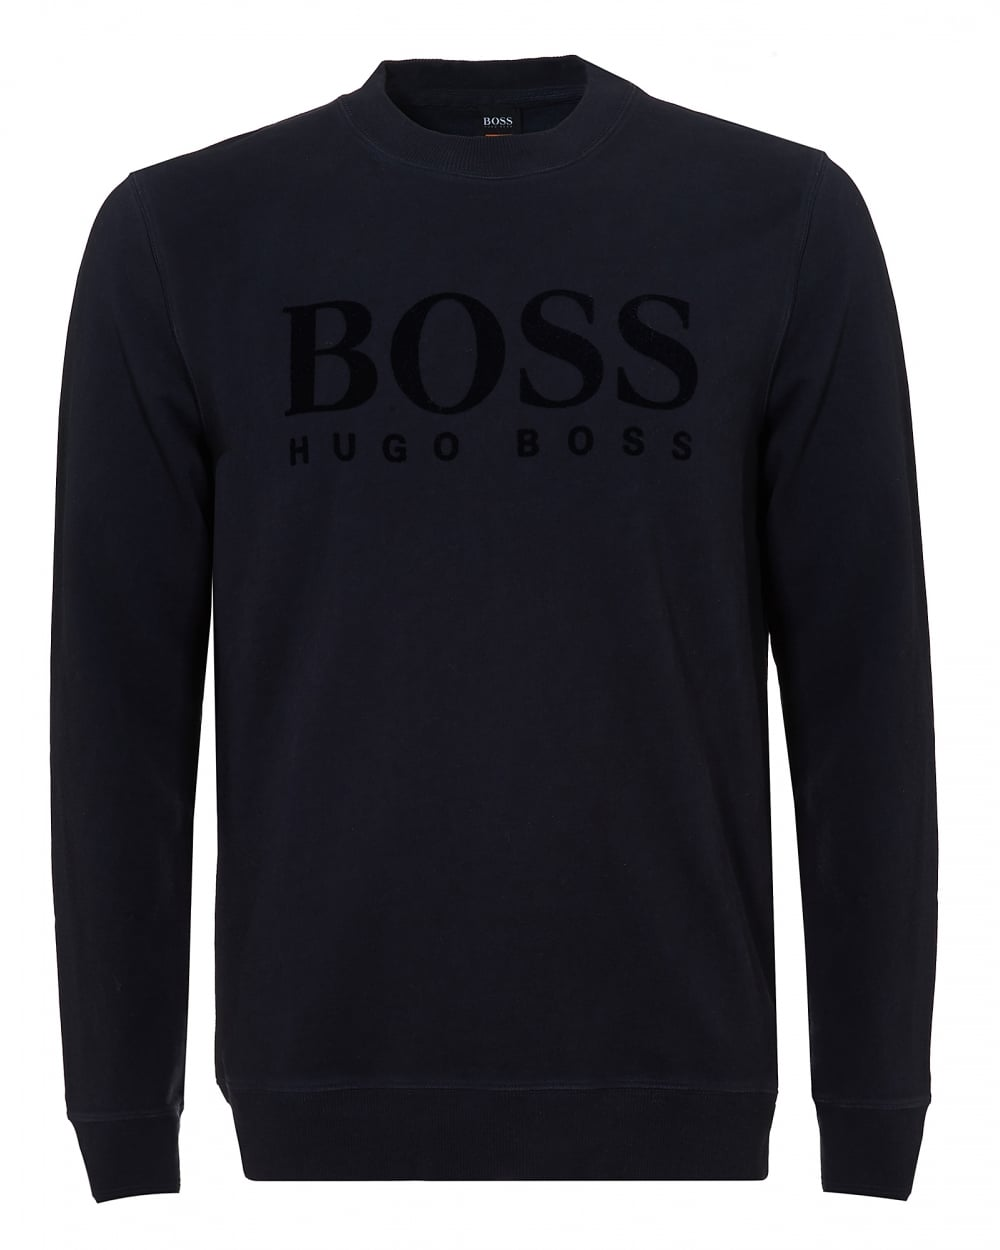 Mens Wlan Sweater, Large Logo Navy Blue Jumper